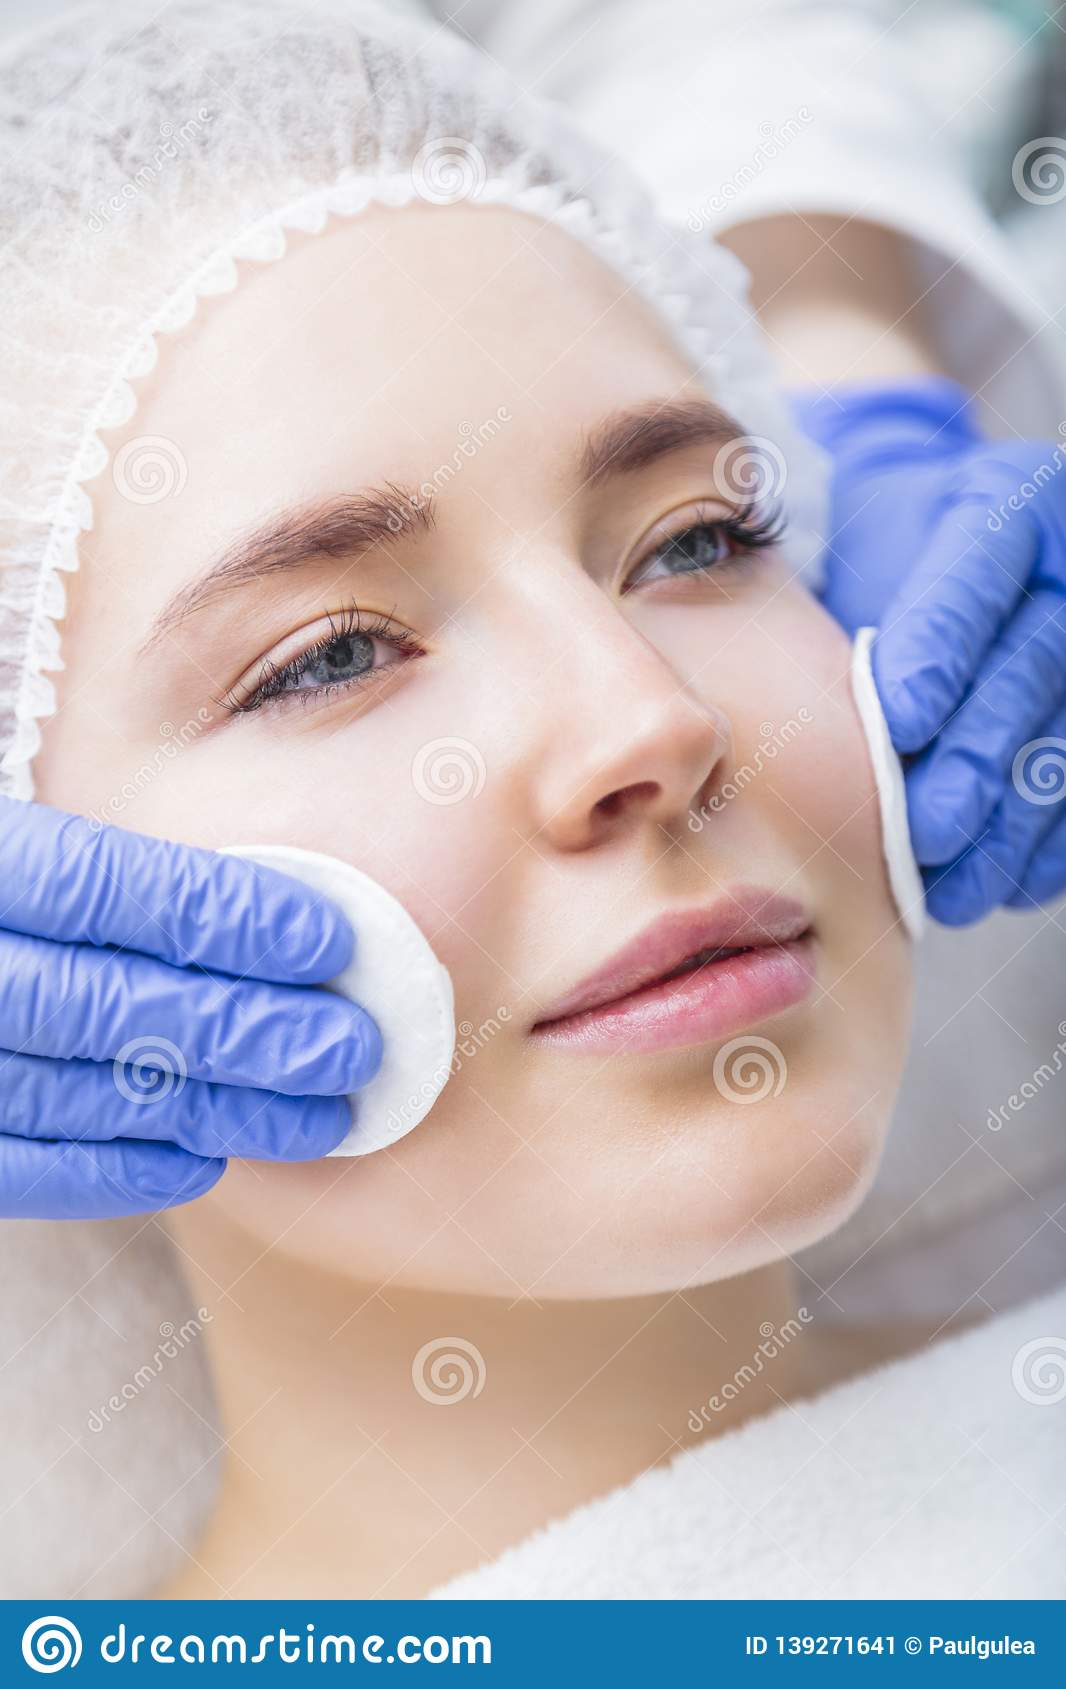 Young woman getting face procedure at salon